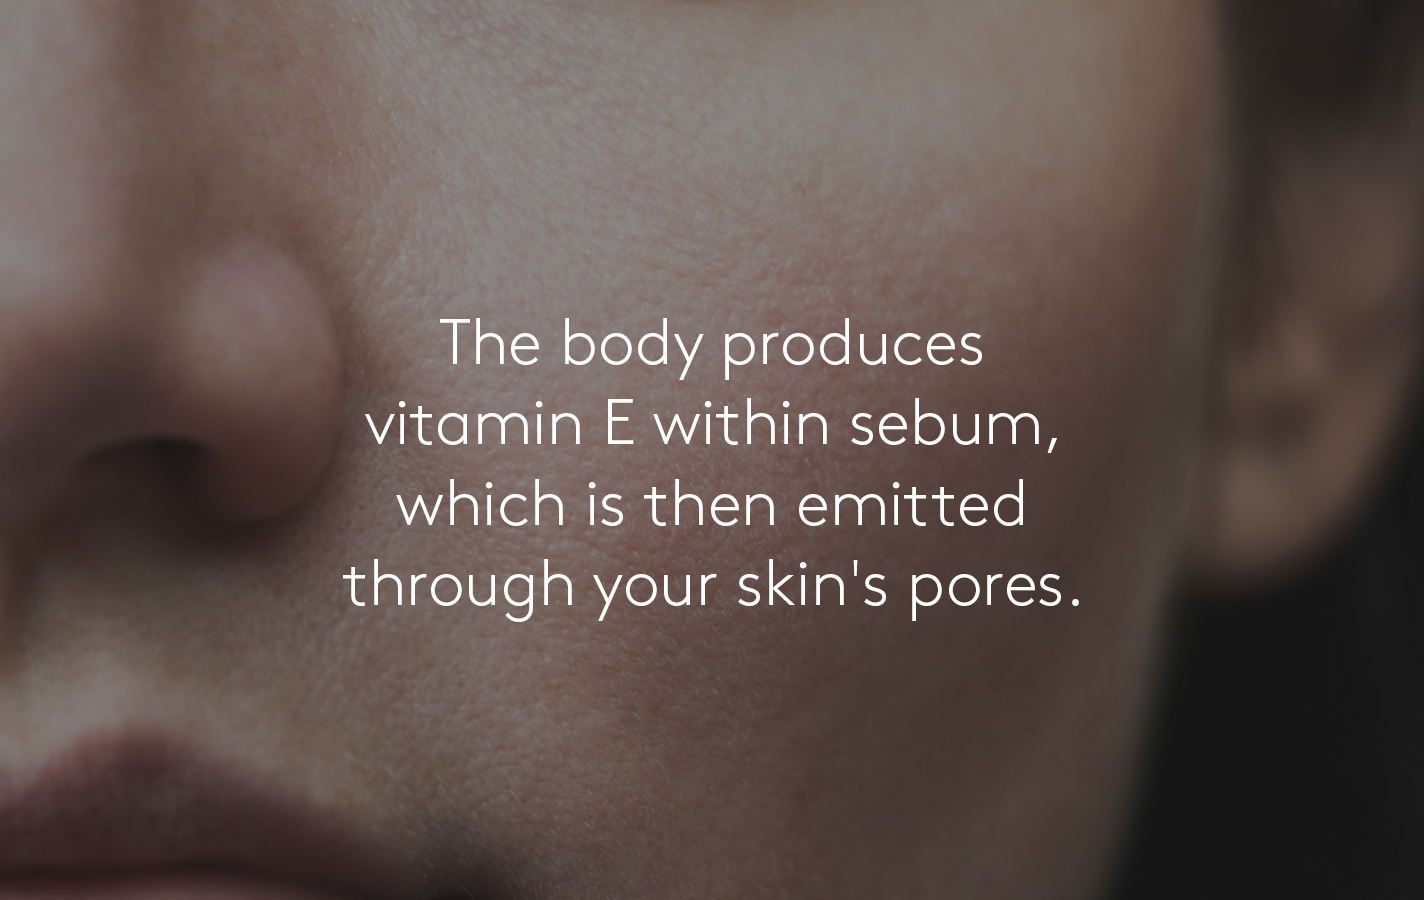 Body produces best vitamins for healthy skin with sebum